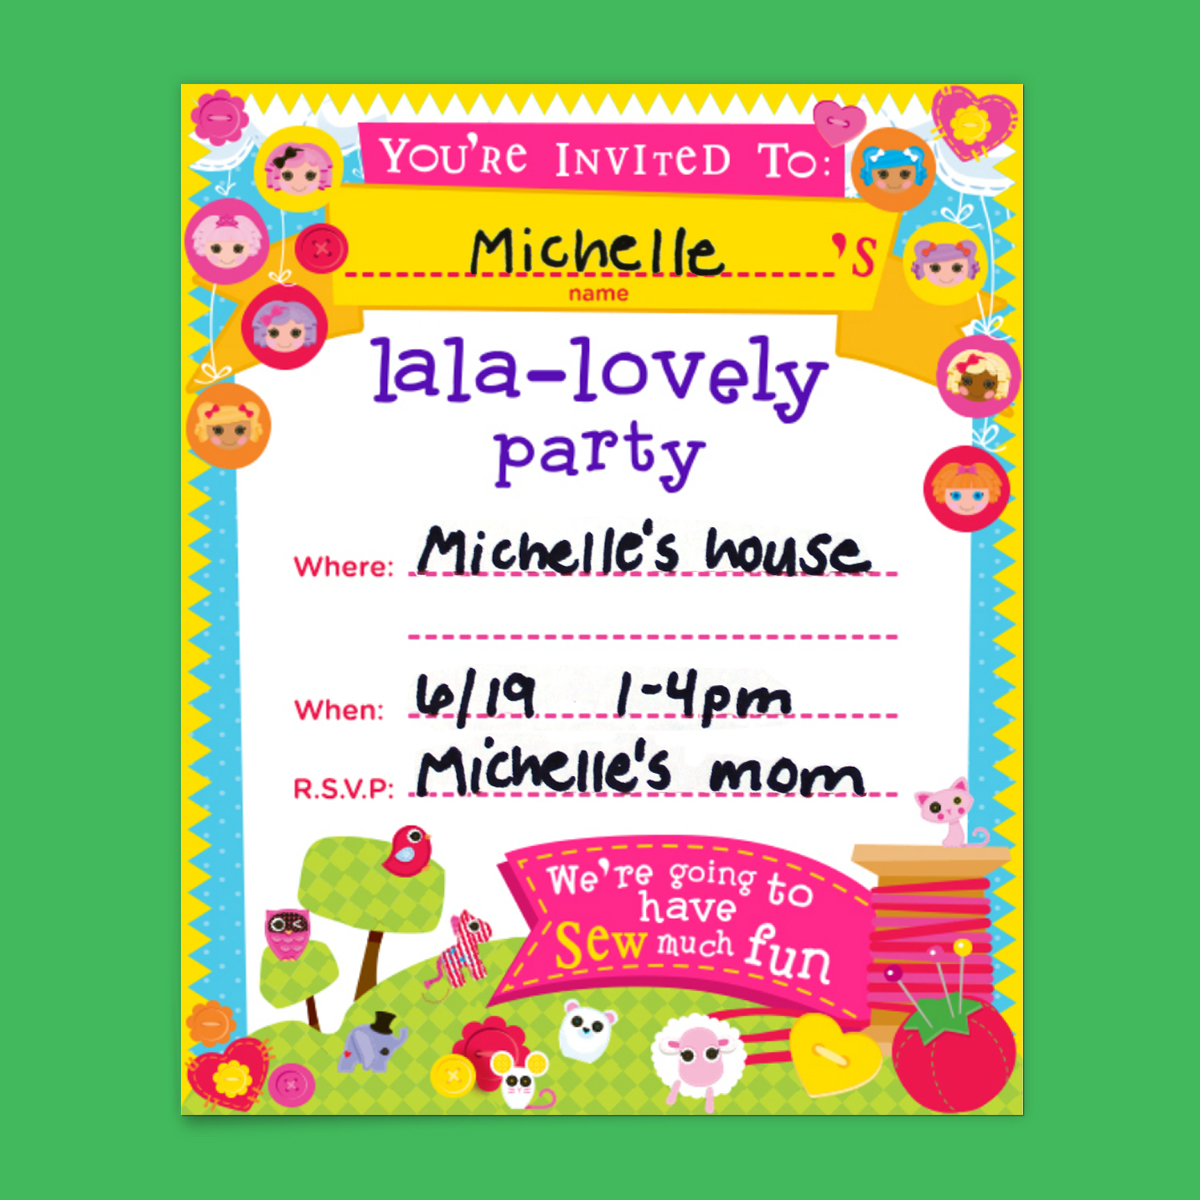 Lalaloopsy Birthday Party Invitations | Nickelodeon Parents